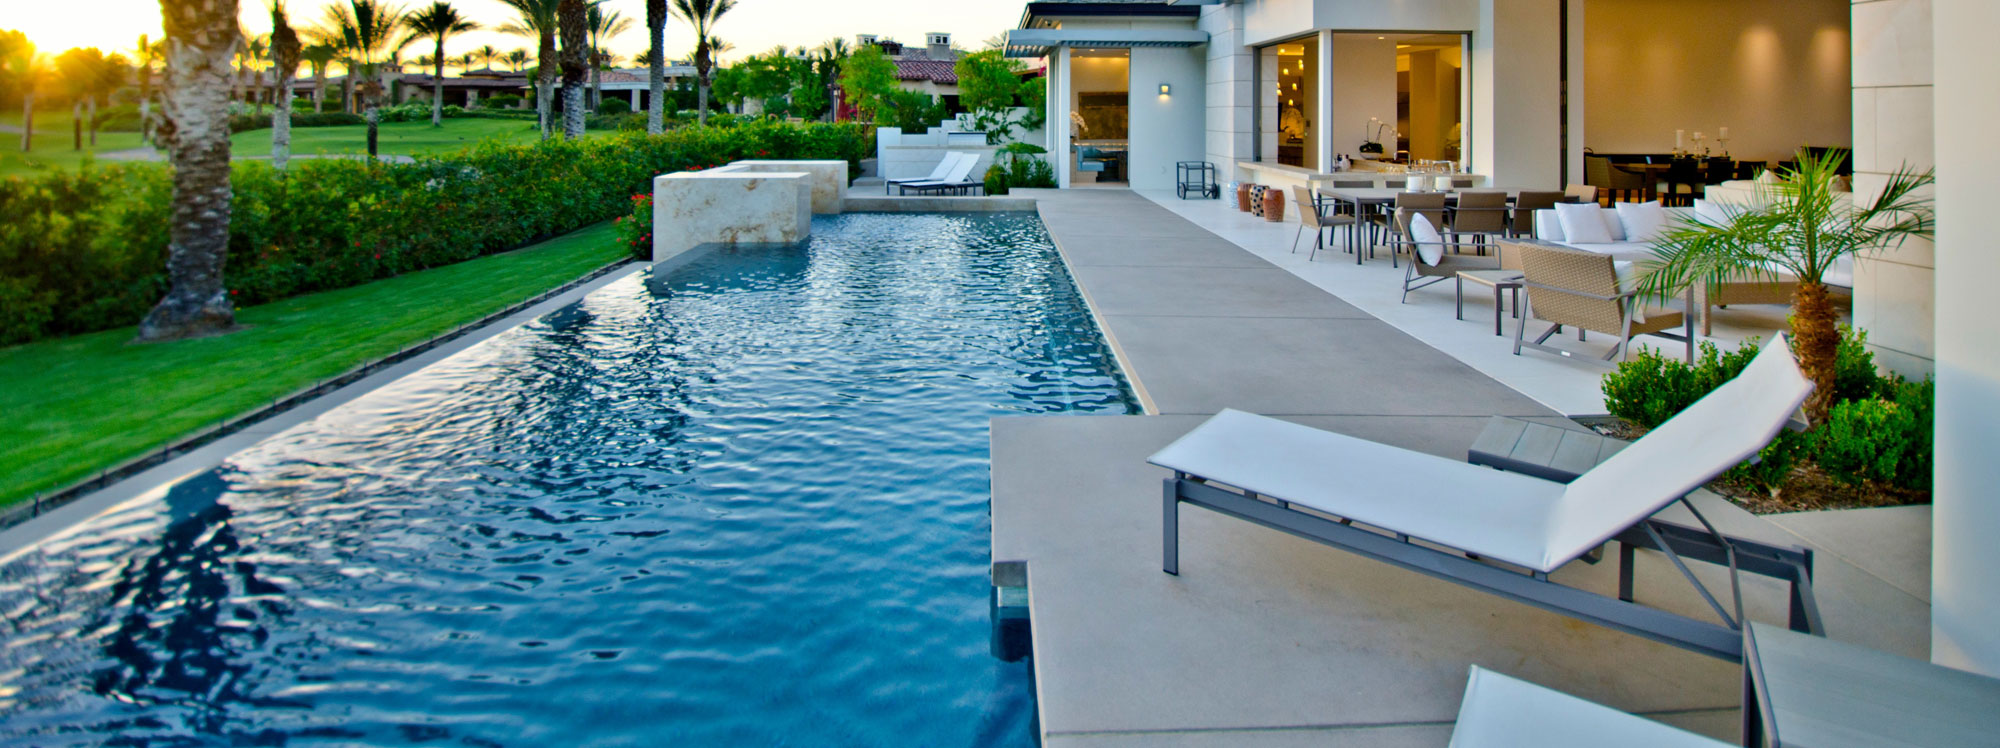 Jacuzzi Pool Ideas The Benefits Of Building A Backyard Pool Azure Pools